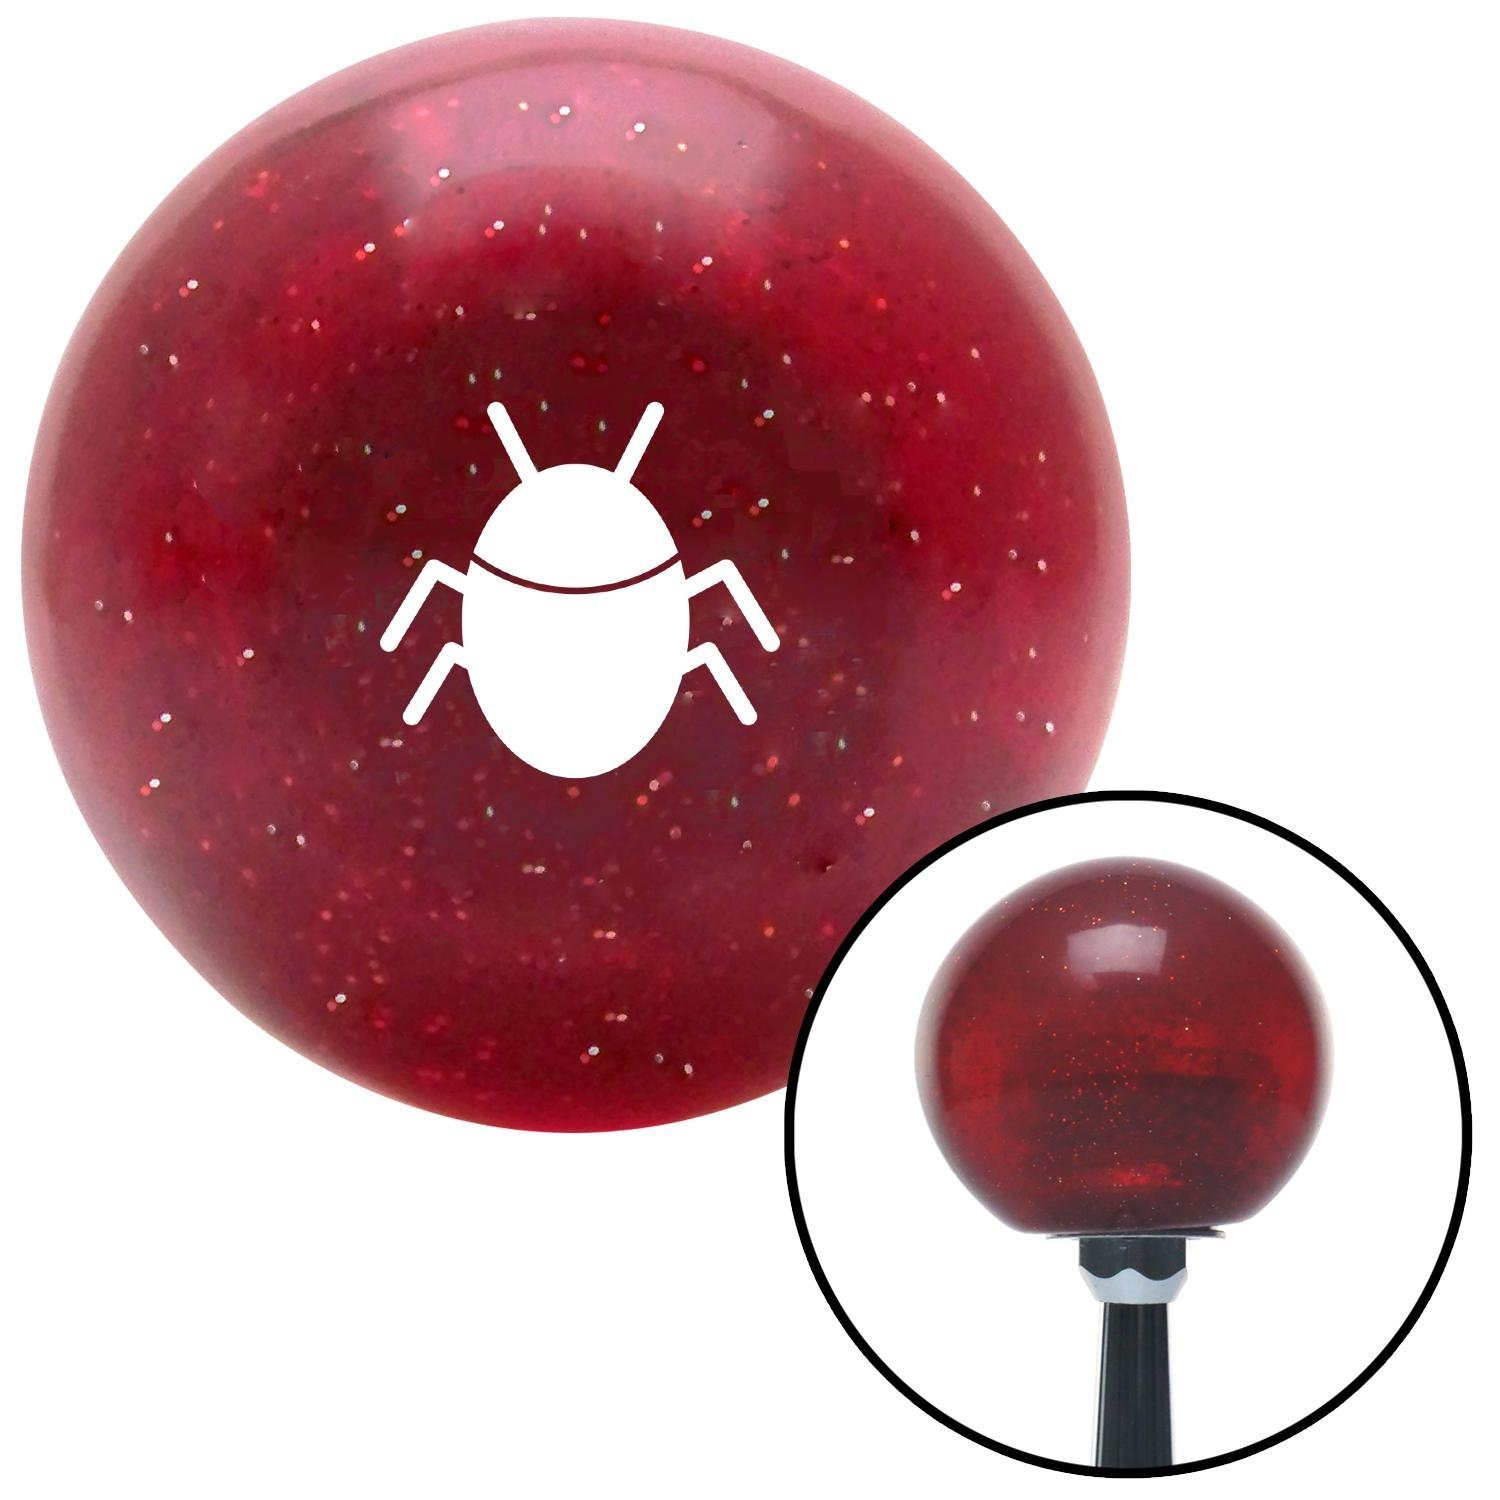 American Shifter 282029 Shift Knob White Bug Red Metal Flake with M16 x 1.5 Insert